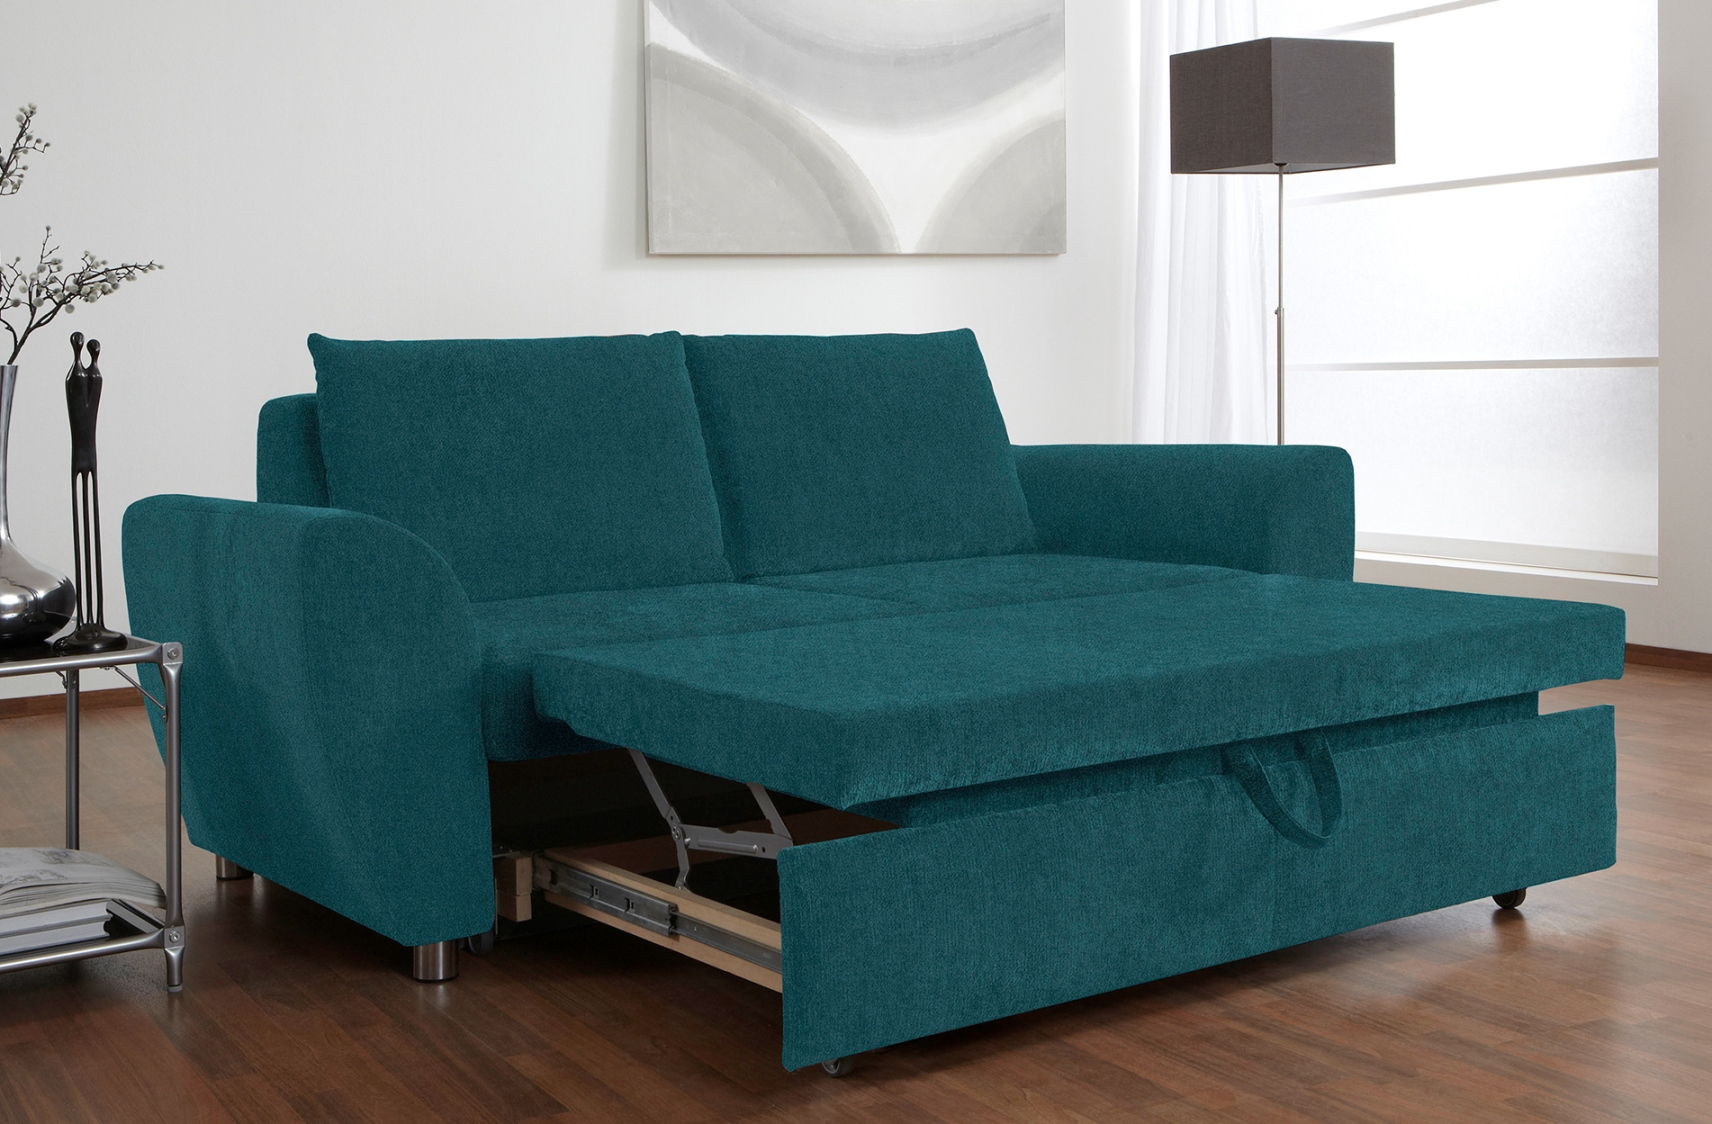 european sleeper sofa 4 folding foam mattress style floor chair by lucid essen the best pull out bed nordholtz